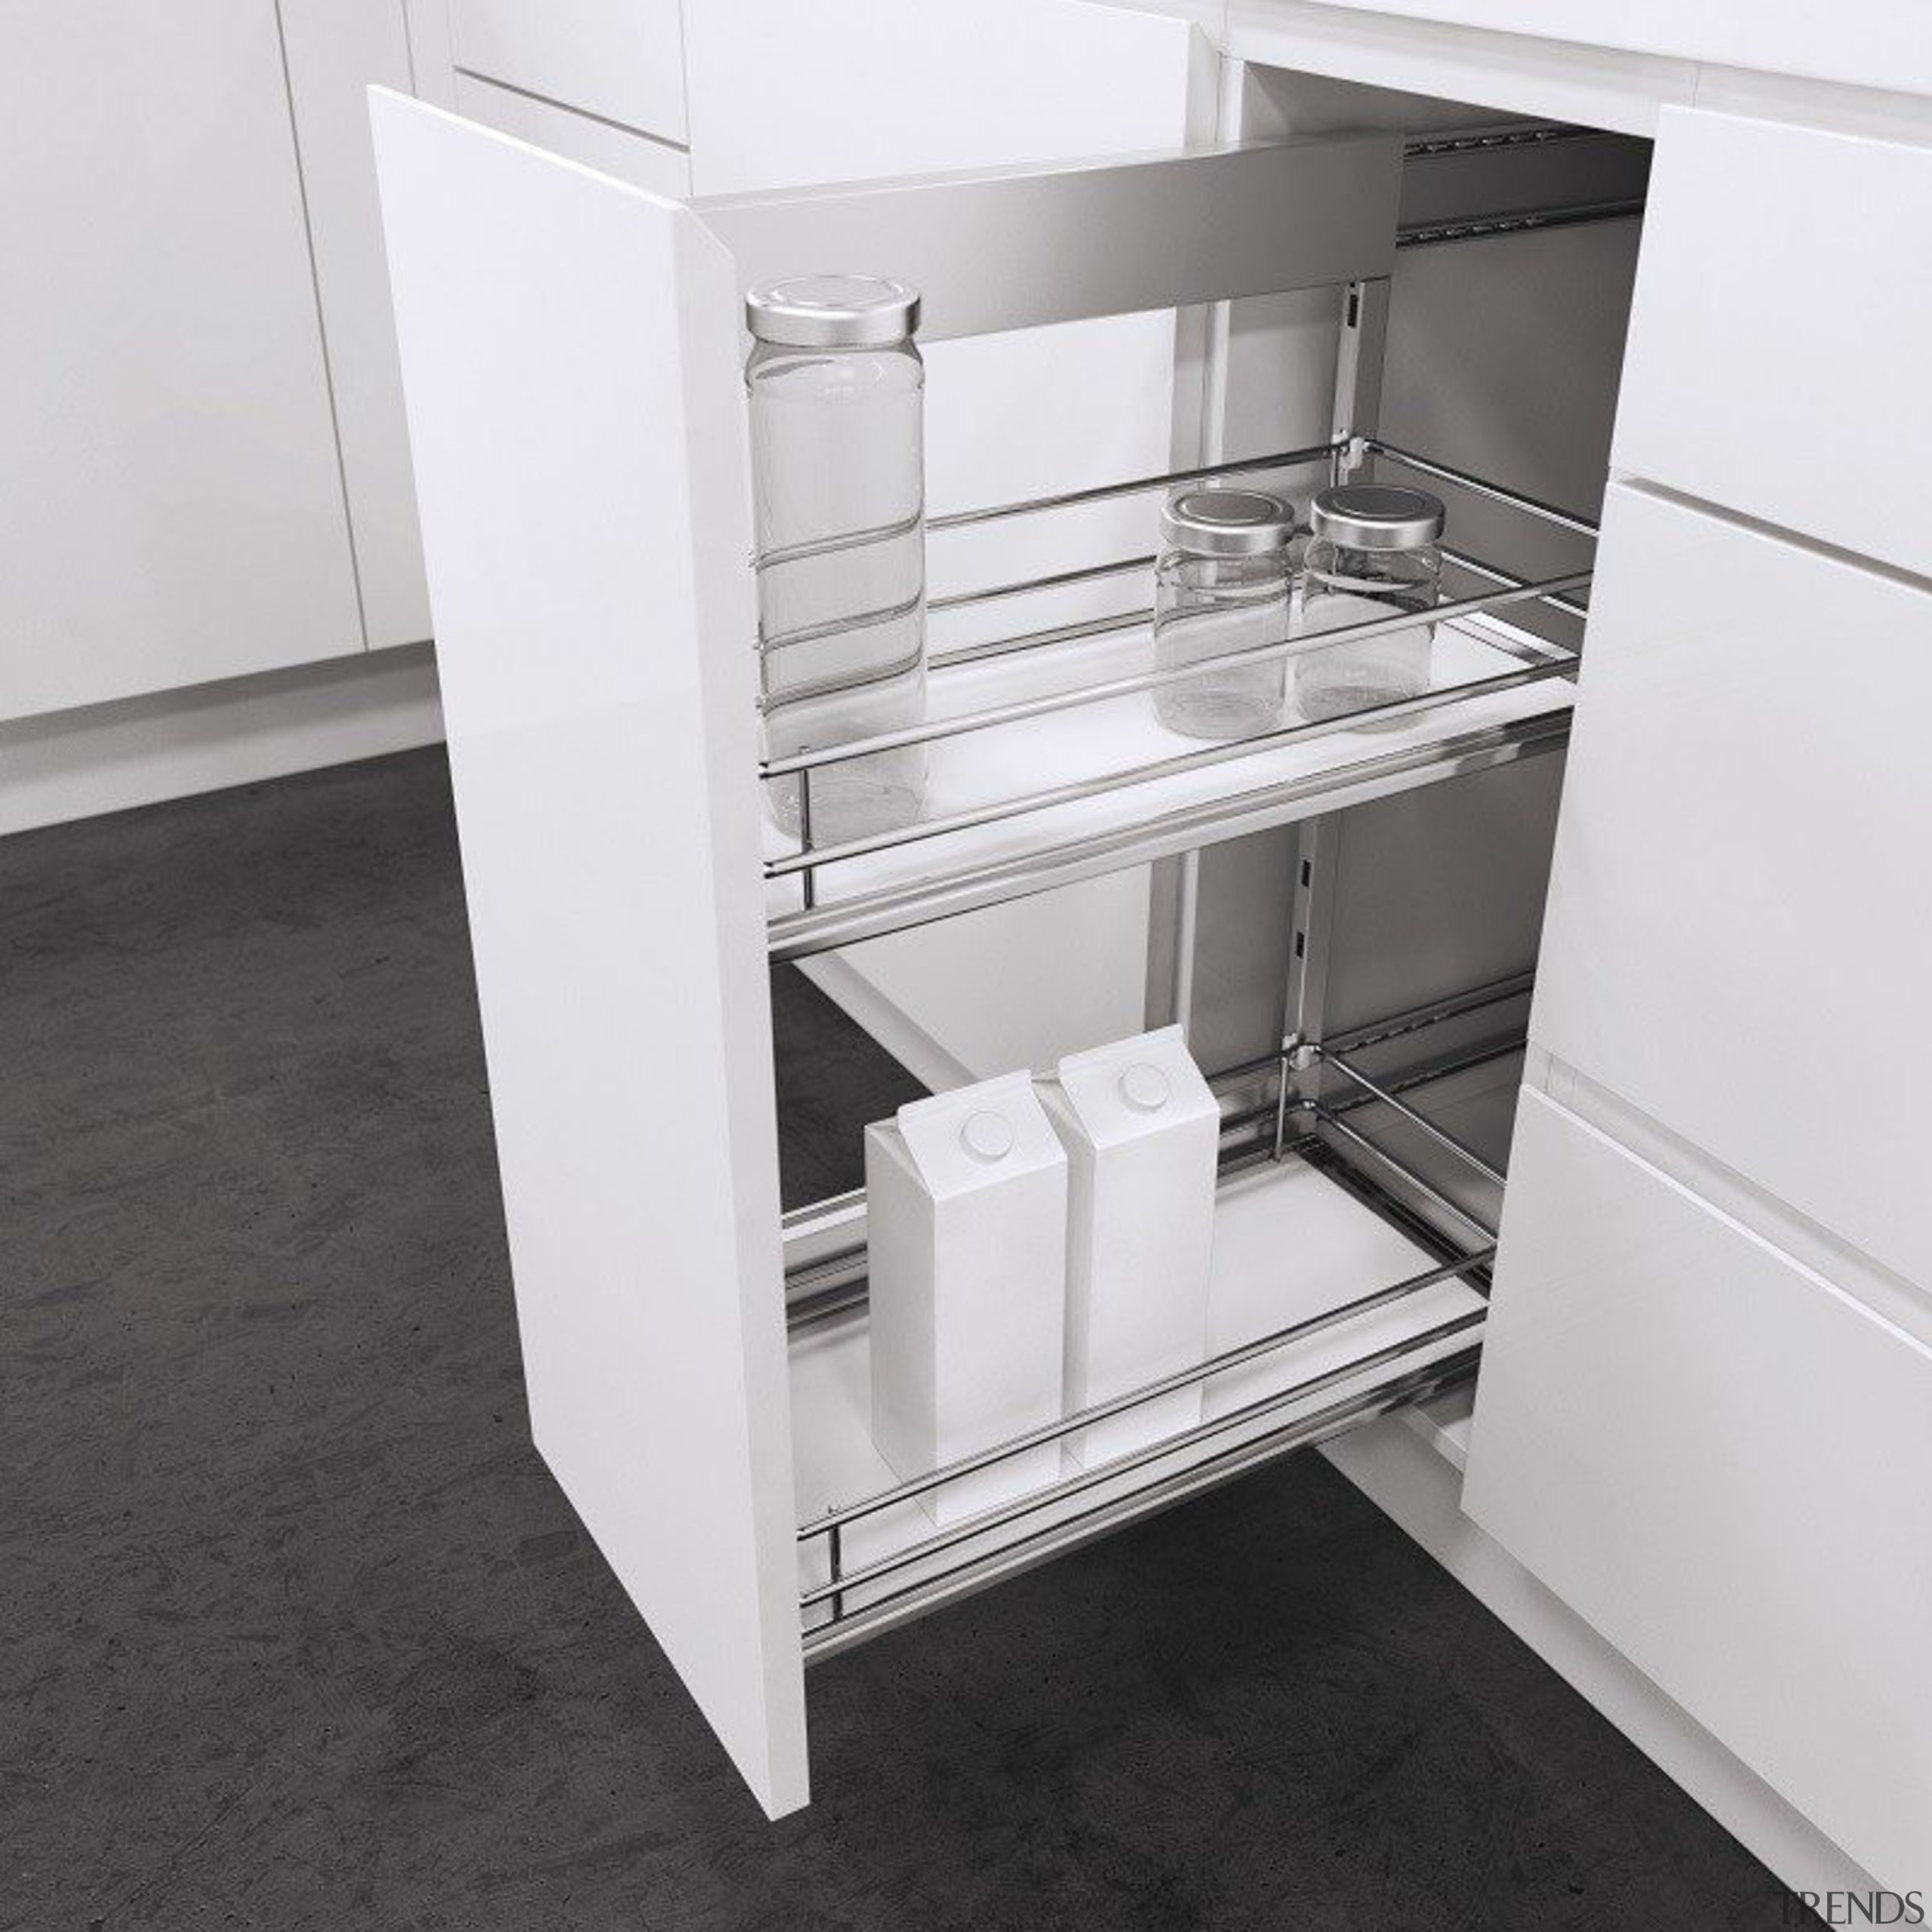 Vauth Sagel's Side Mounted Pull Out with Premea drawer, furniture, product, product design, shelf, shelving, white, black, gray